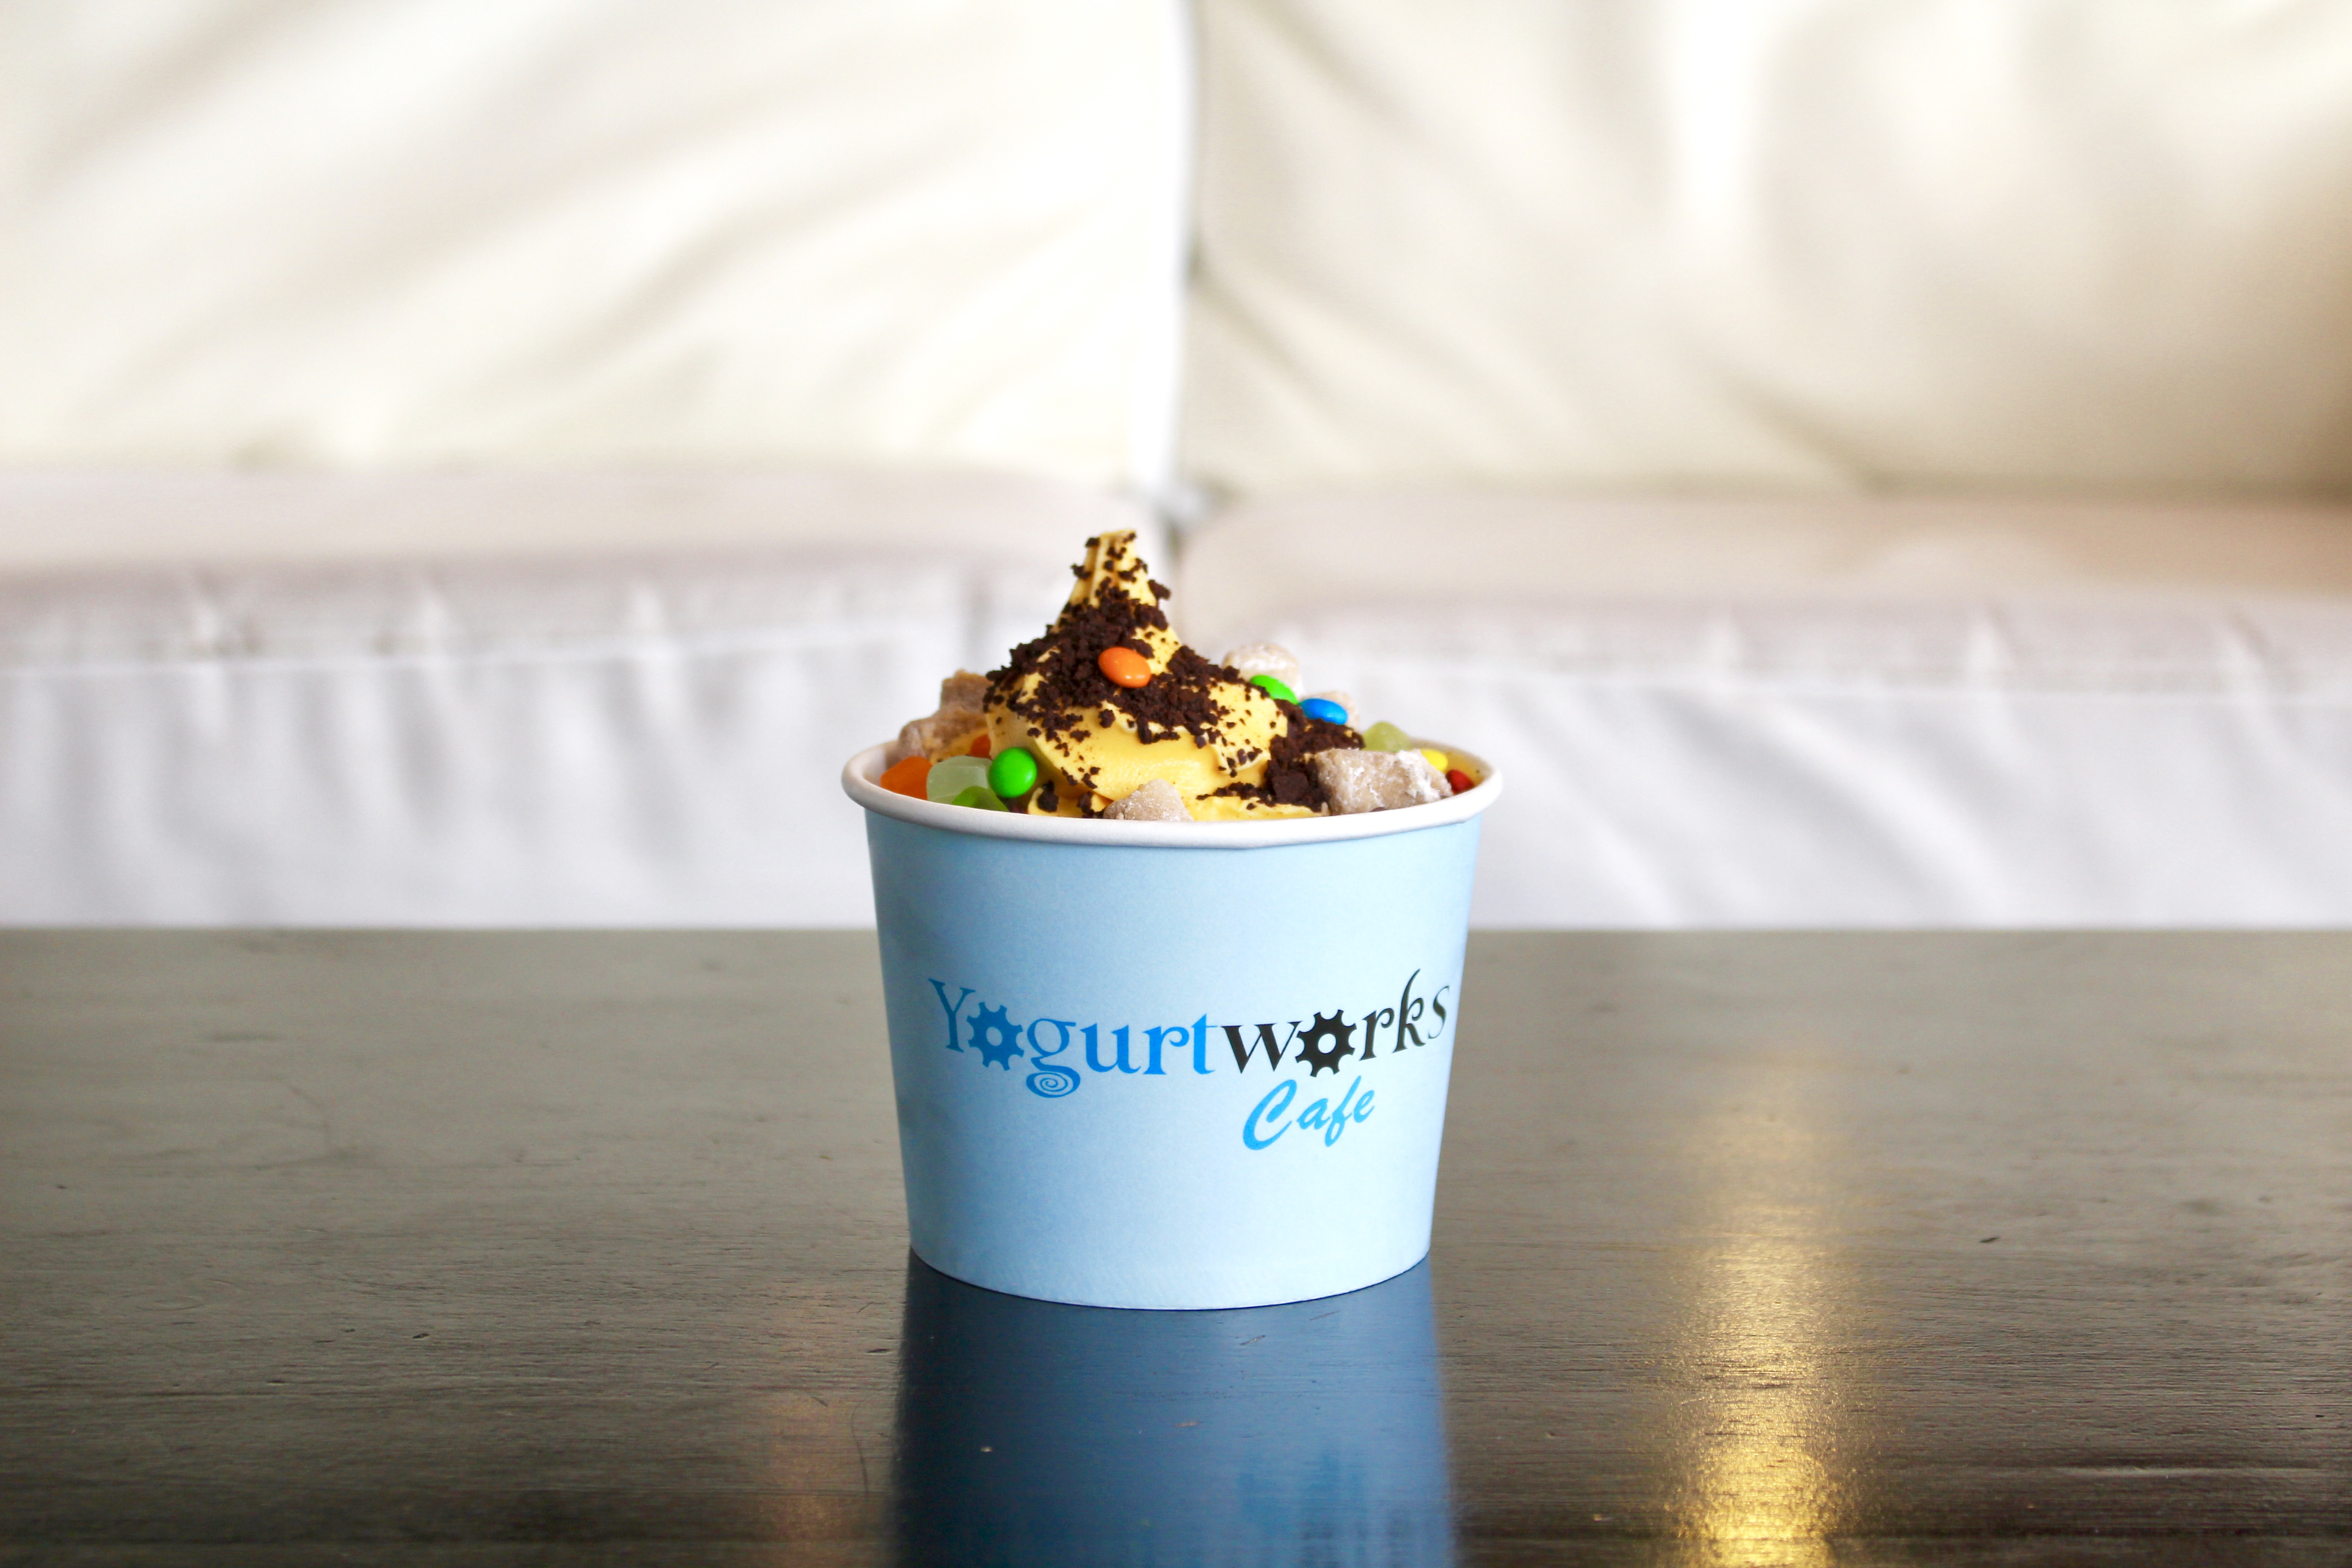 Yogurtworks Cafe Frozen Yogurt Shop In Ephrata Pa